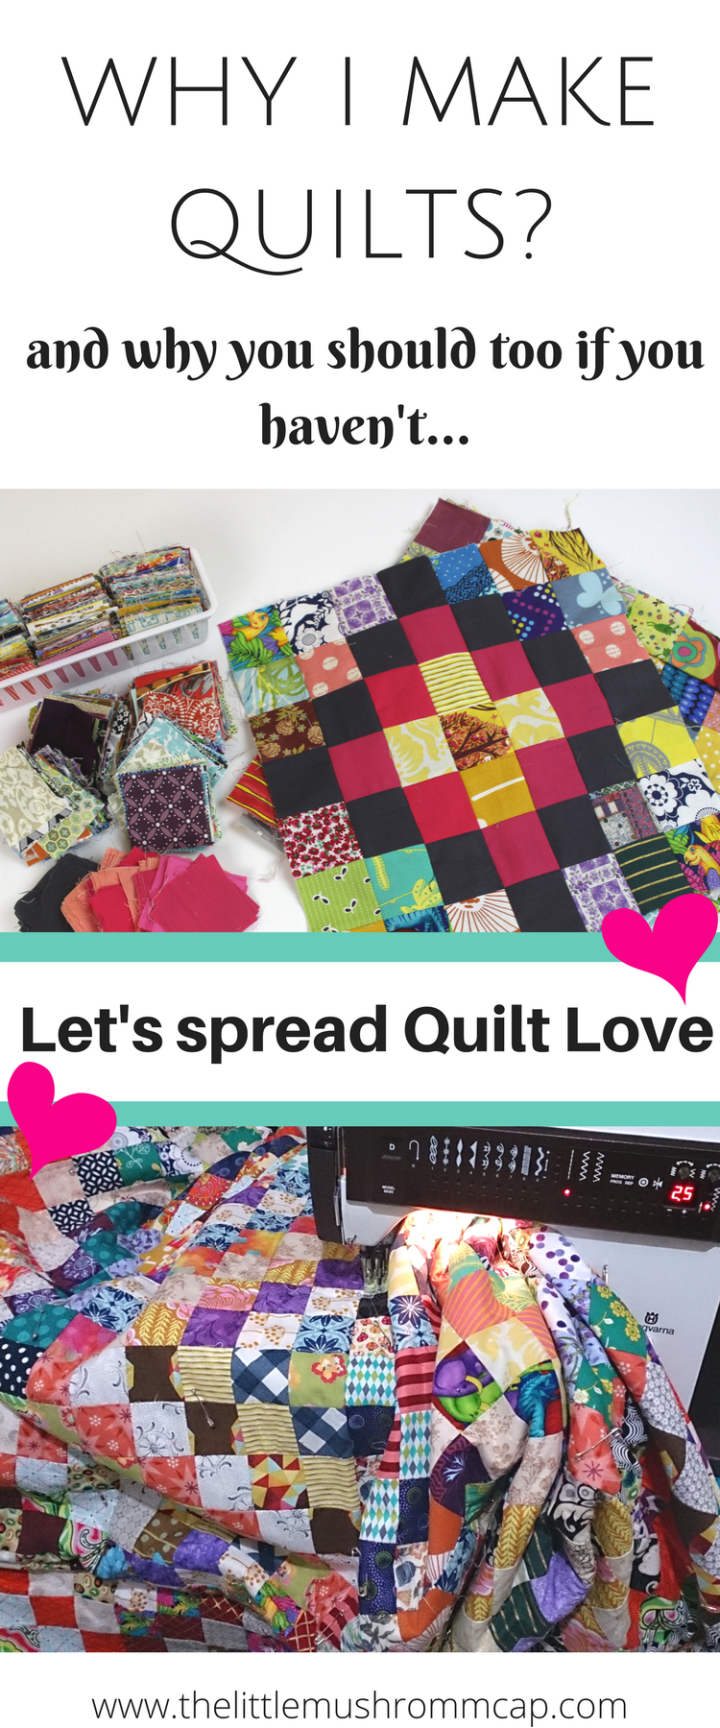 5 reason why you should start making quilts! If you are a quilter, share your why and let's sread quilt love ...